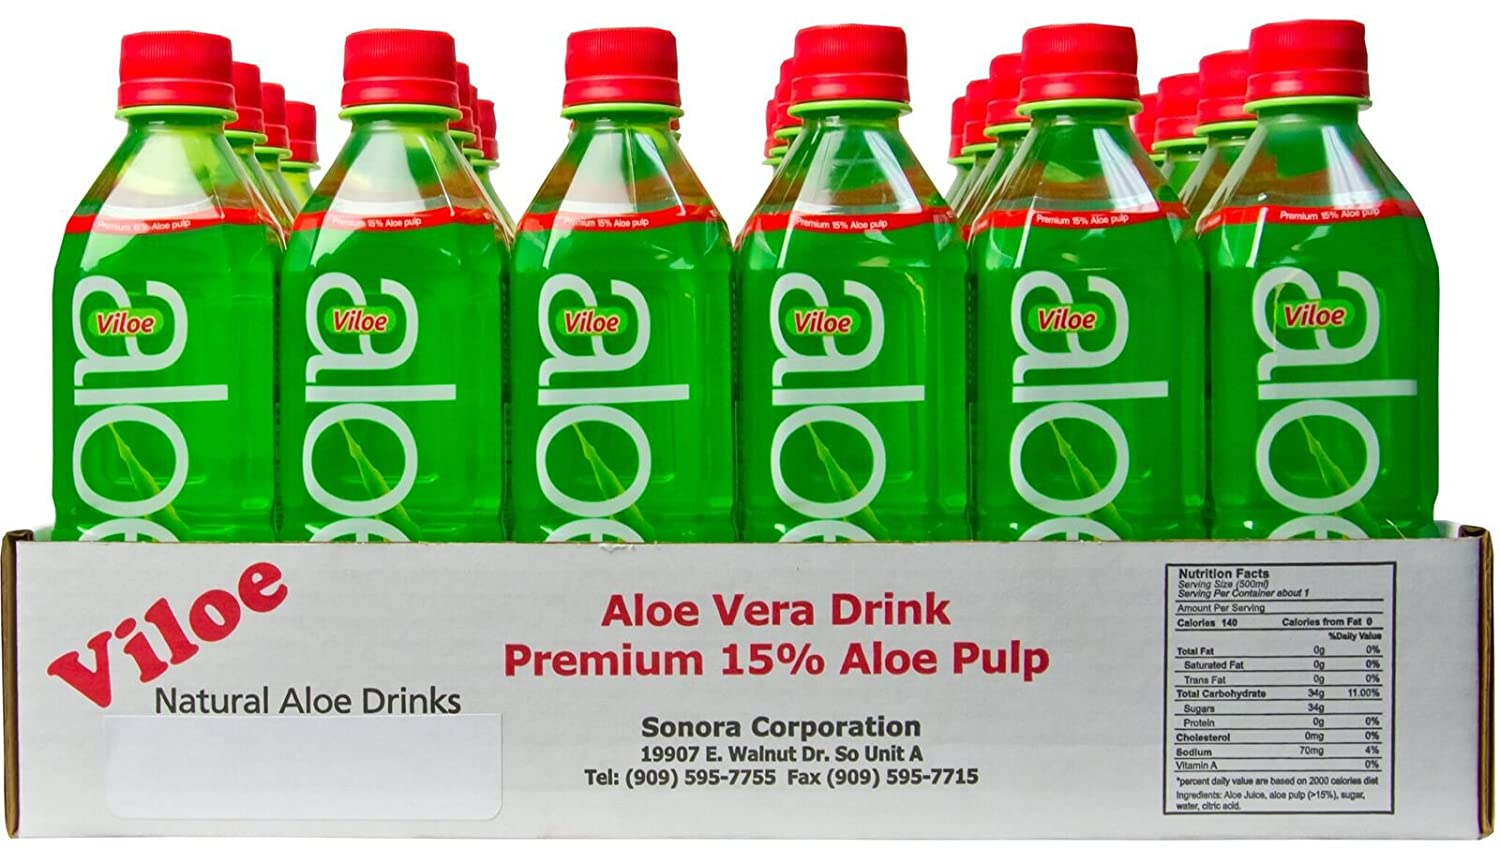 Amazon.com : Viloe Aloe Vera Drink, 16.9 Ounce (Pack of 24) : Grocery & Gourmet Food